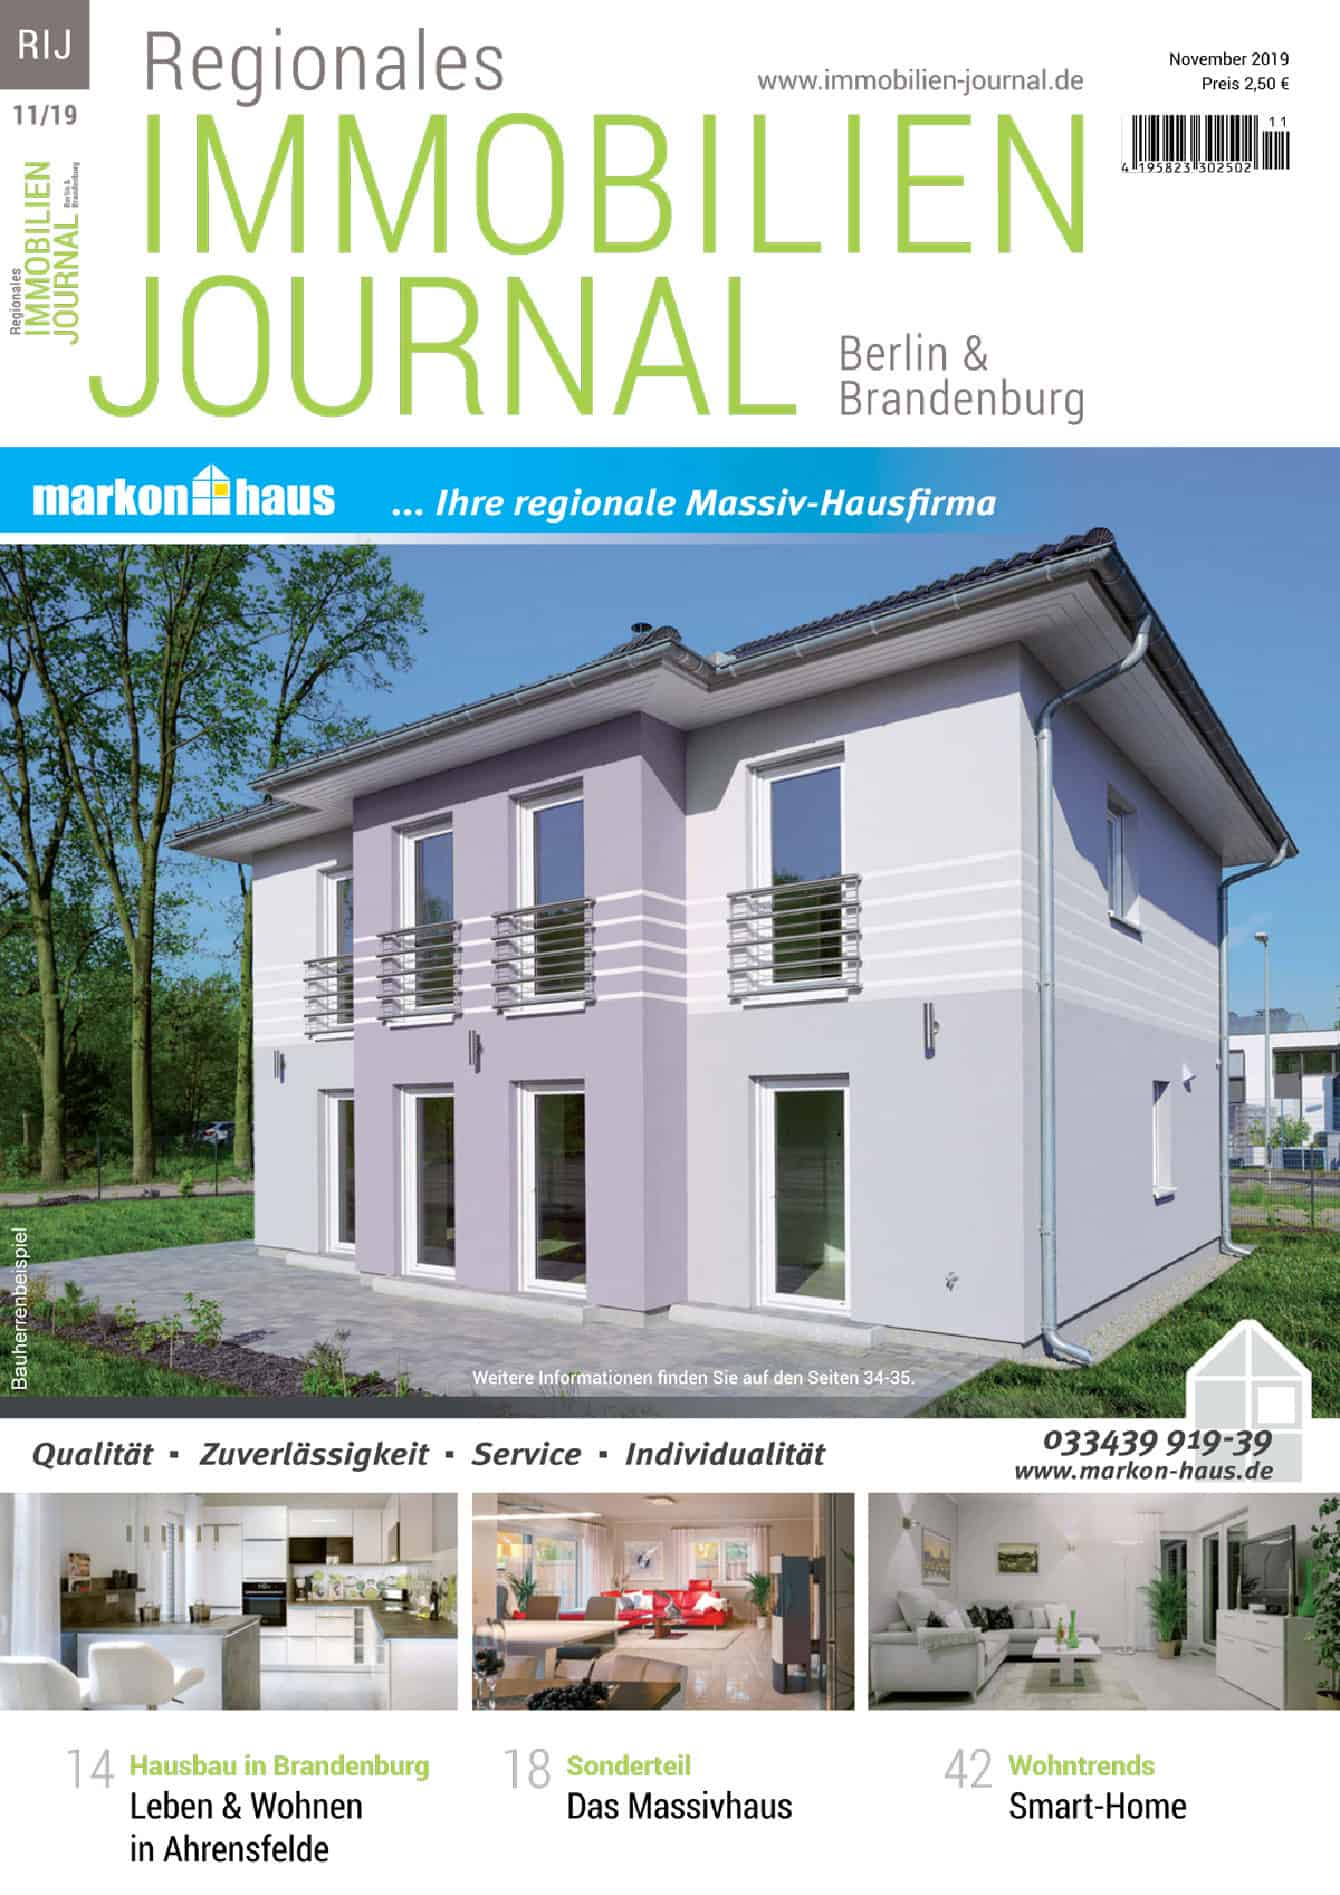 Regionales Immobilien Journal Berlin & Brandenburg 11-2019